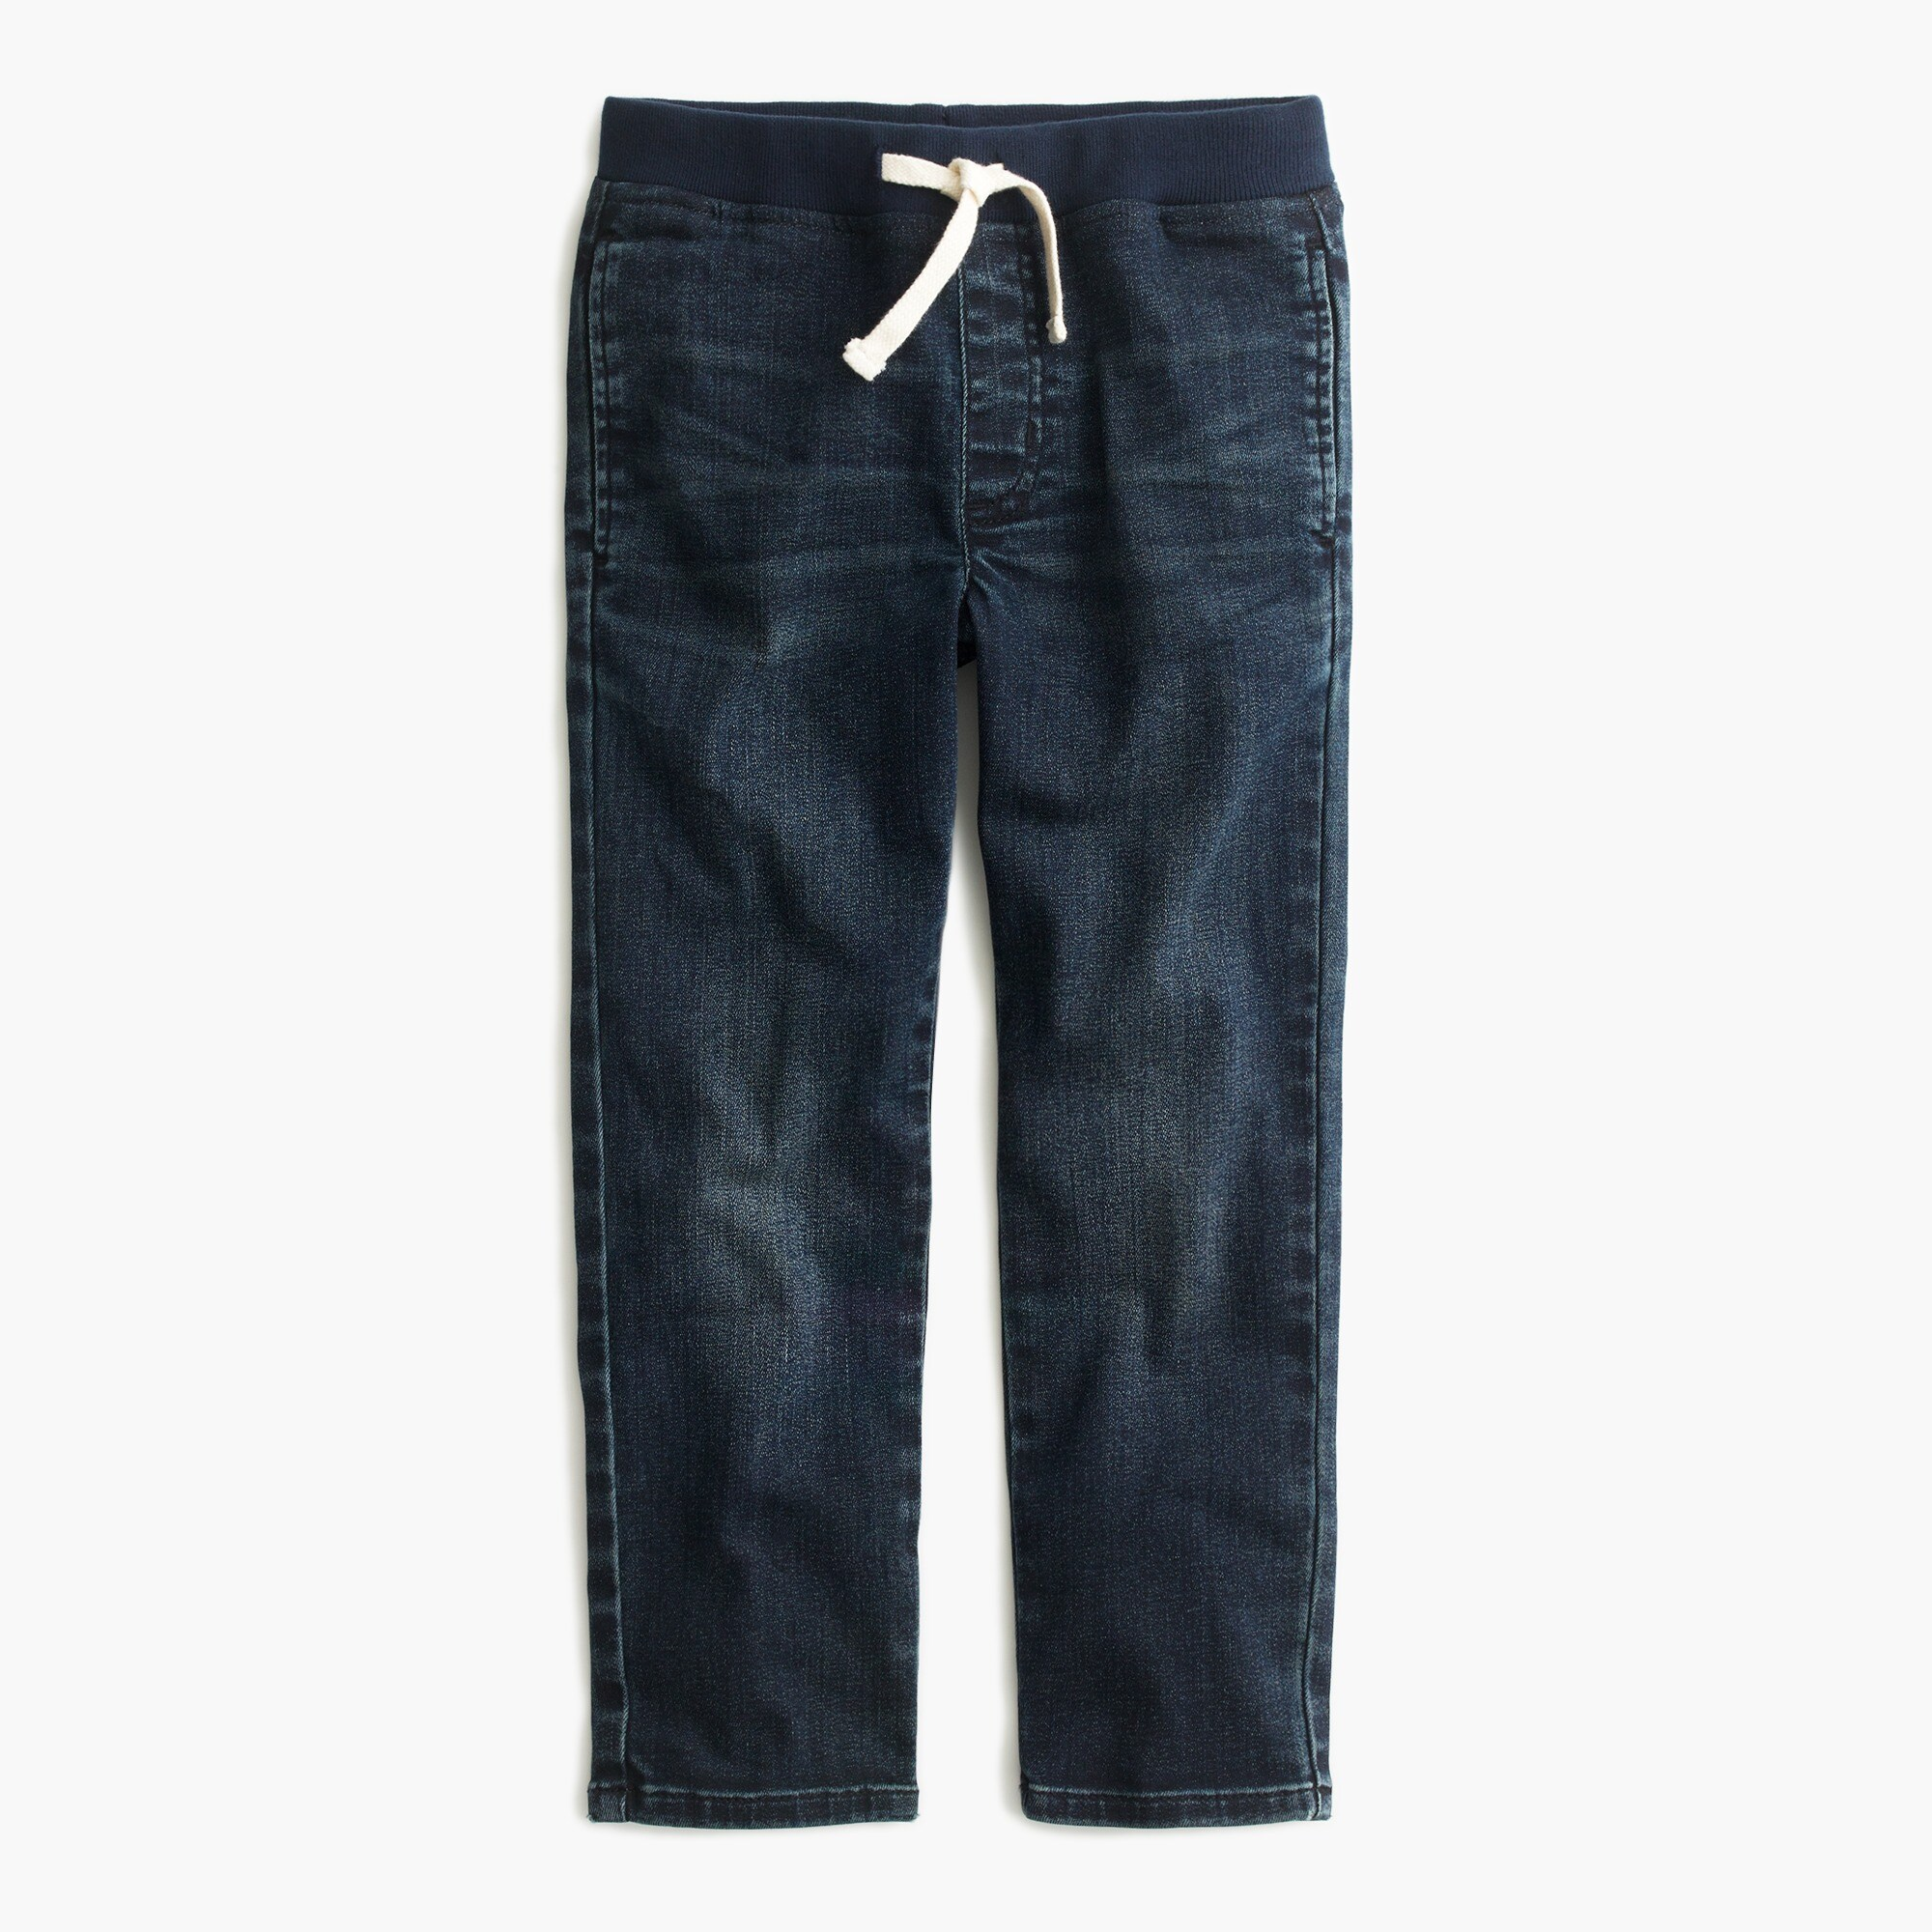 Boys' pull-on jeans boy pants c